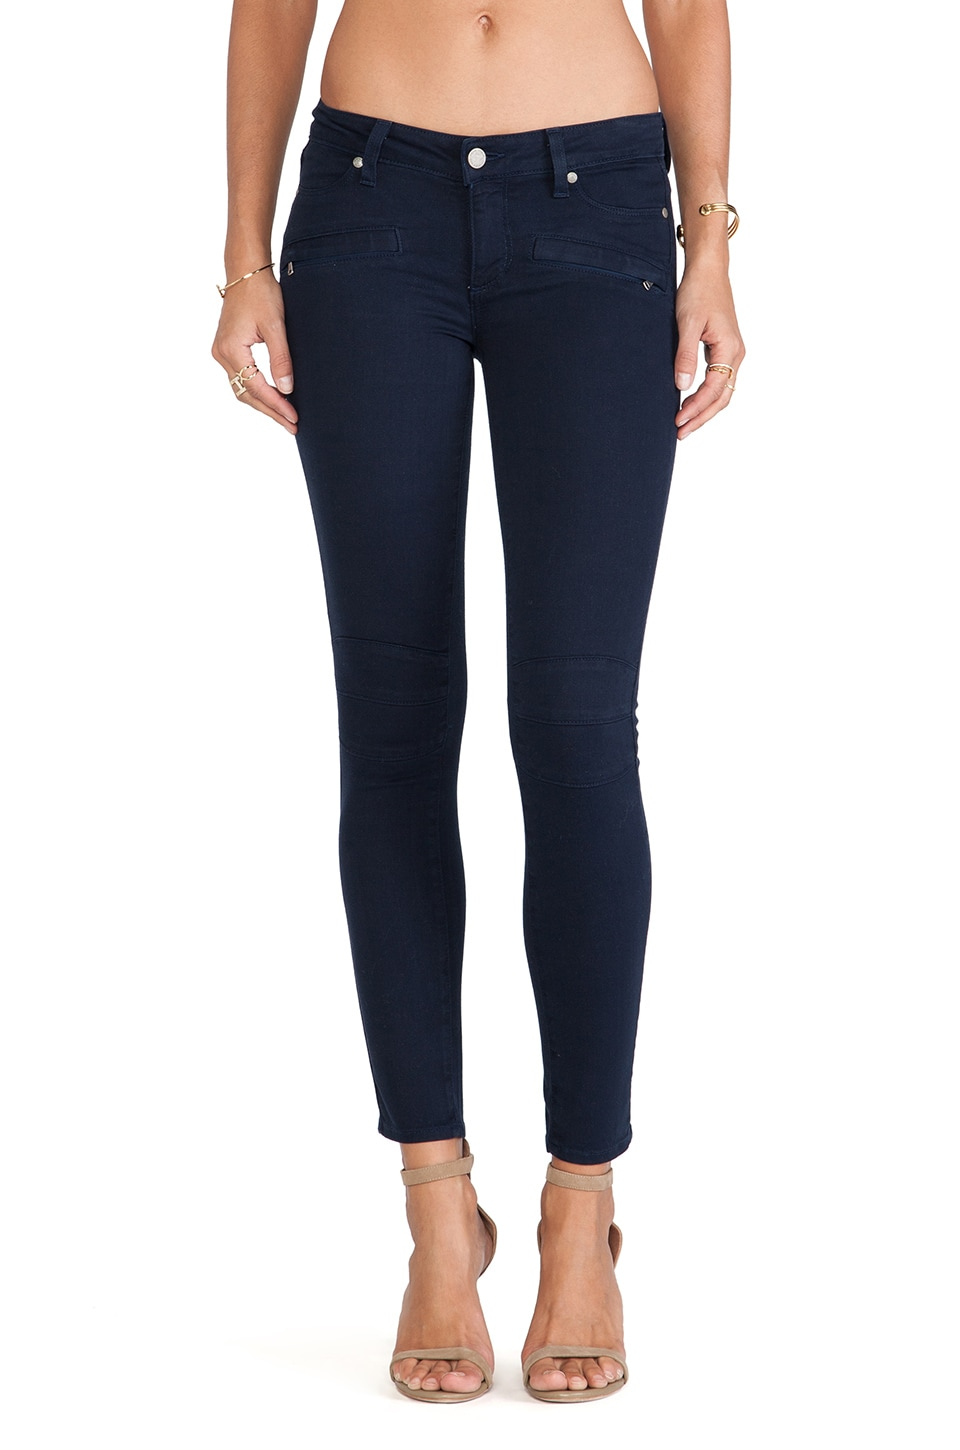 PAIGE Denim Ollie Skinny in Midnight Navy